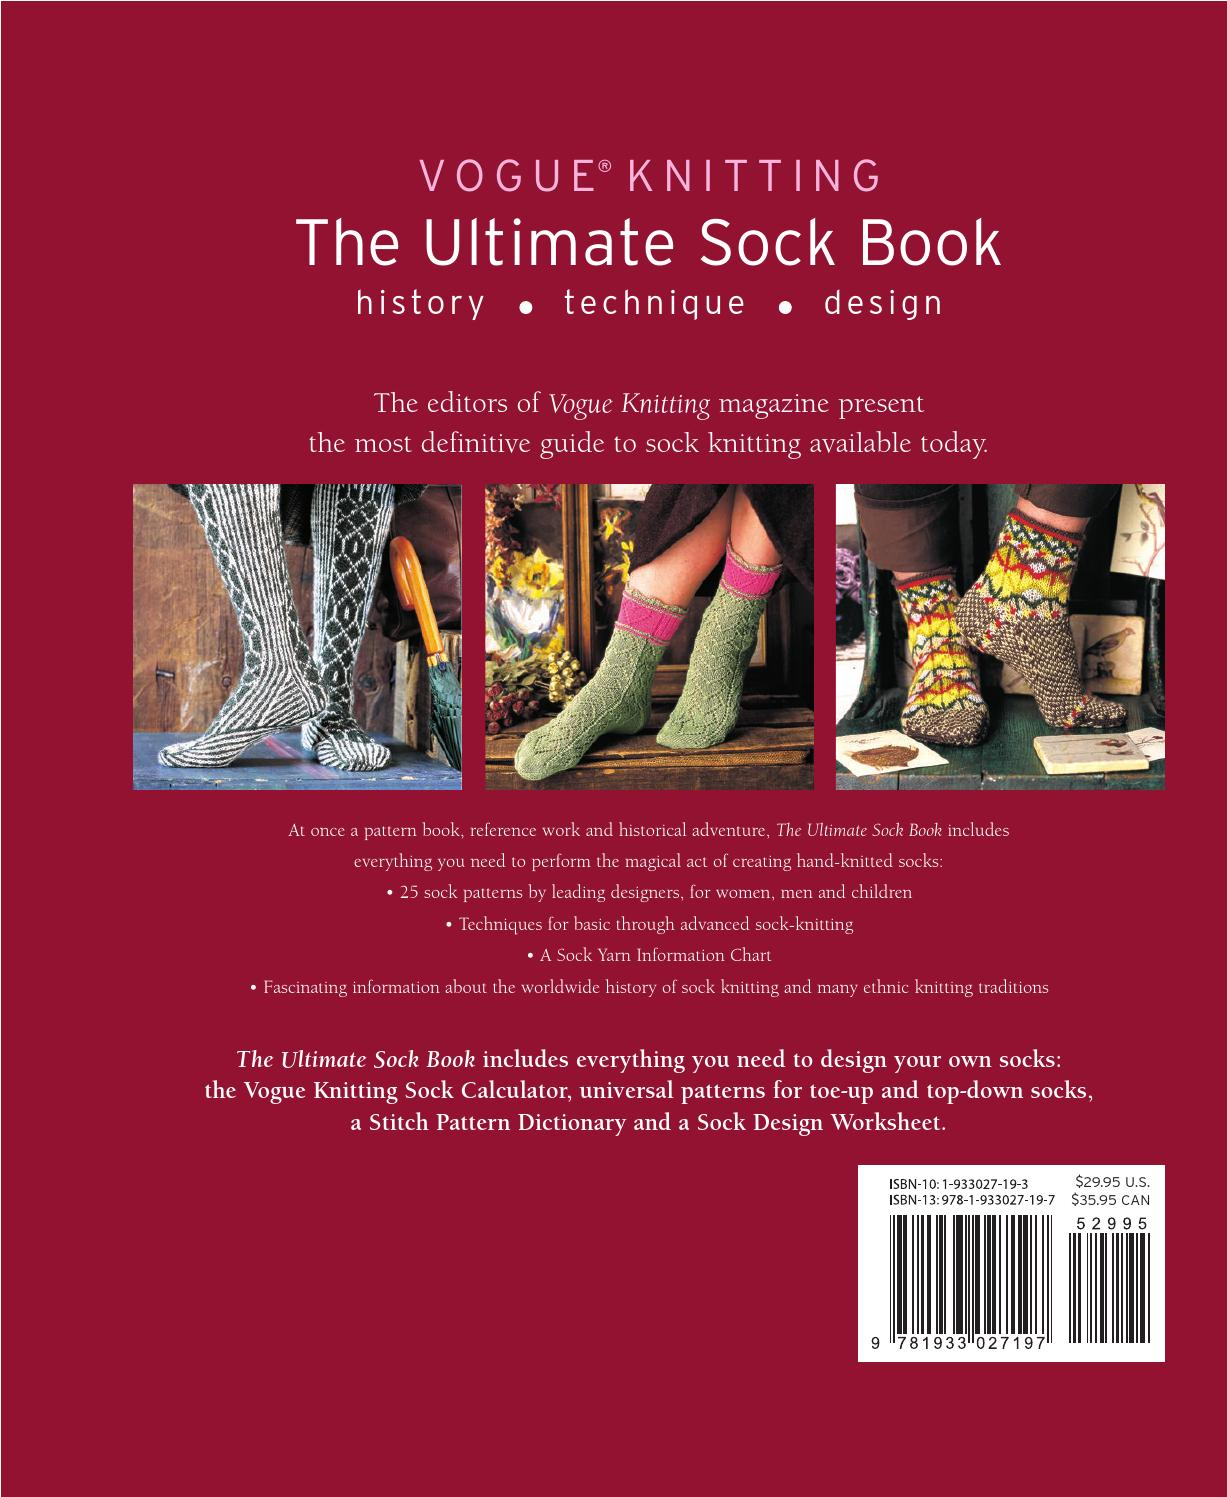 Vogue Knitting The Ultimate Sock Book History Technique Design By